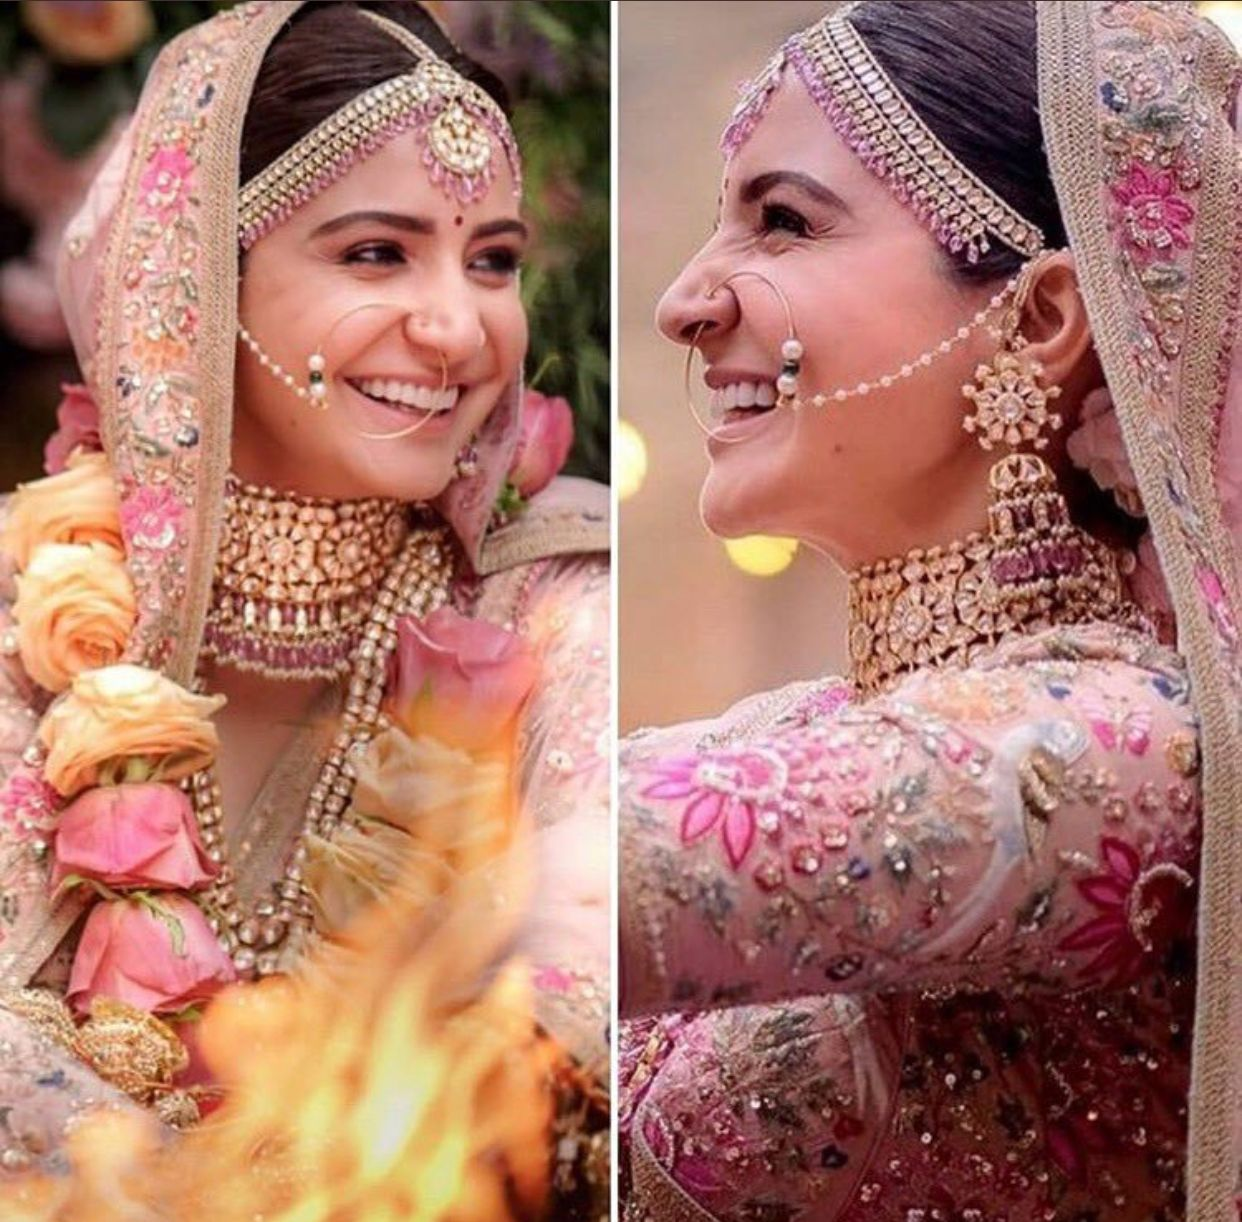 Anushka Sharma on her wedding day #sabyasachi #virushka #wedding ...